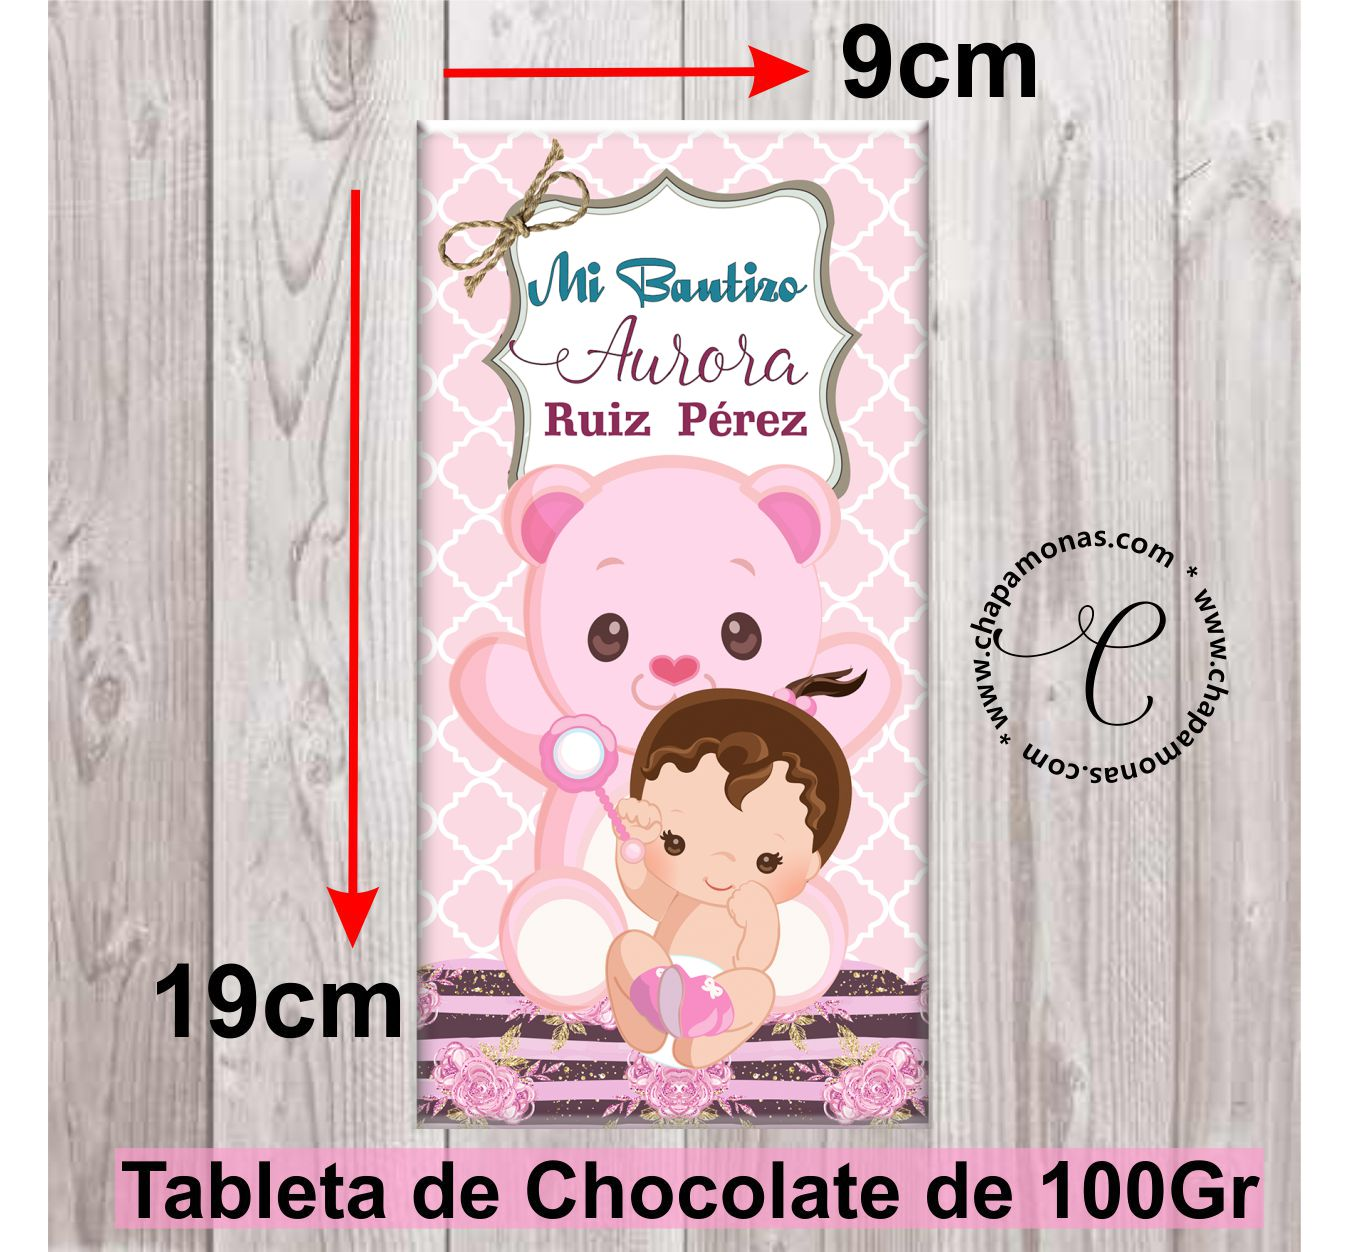 TABLETA DE CHOCOLATE BEBITA (Rubia y Morena)